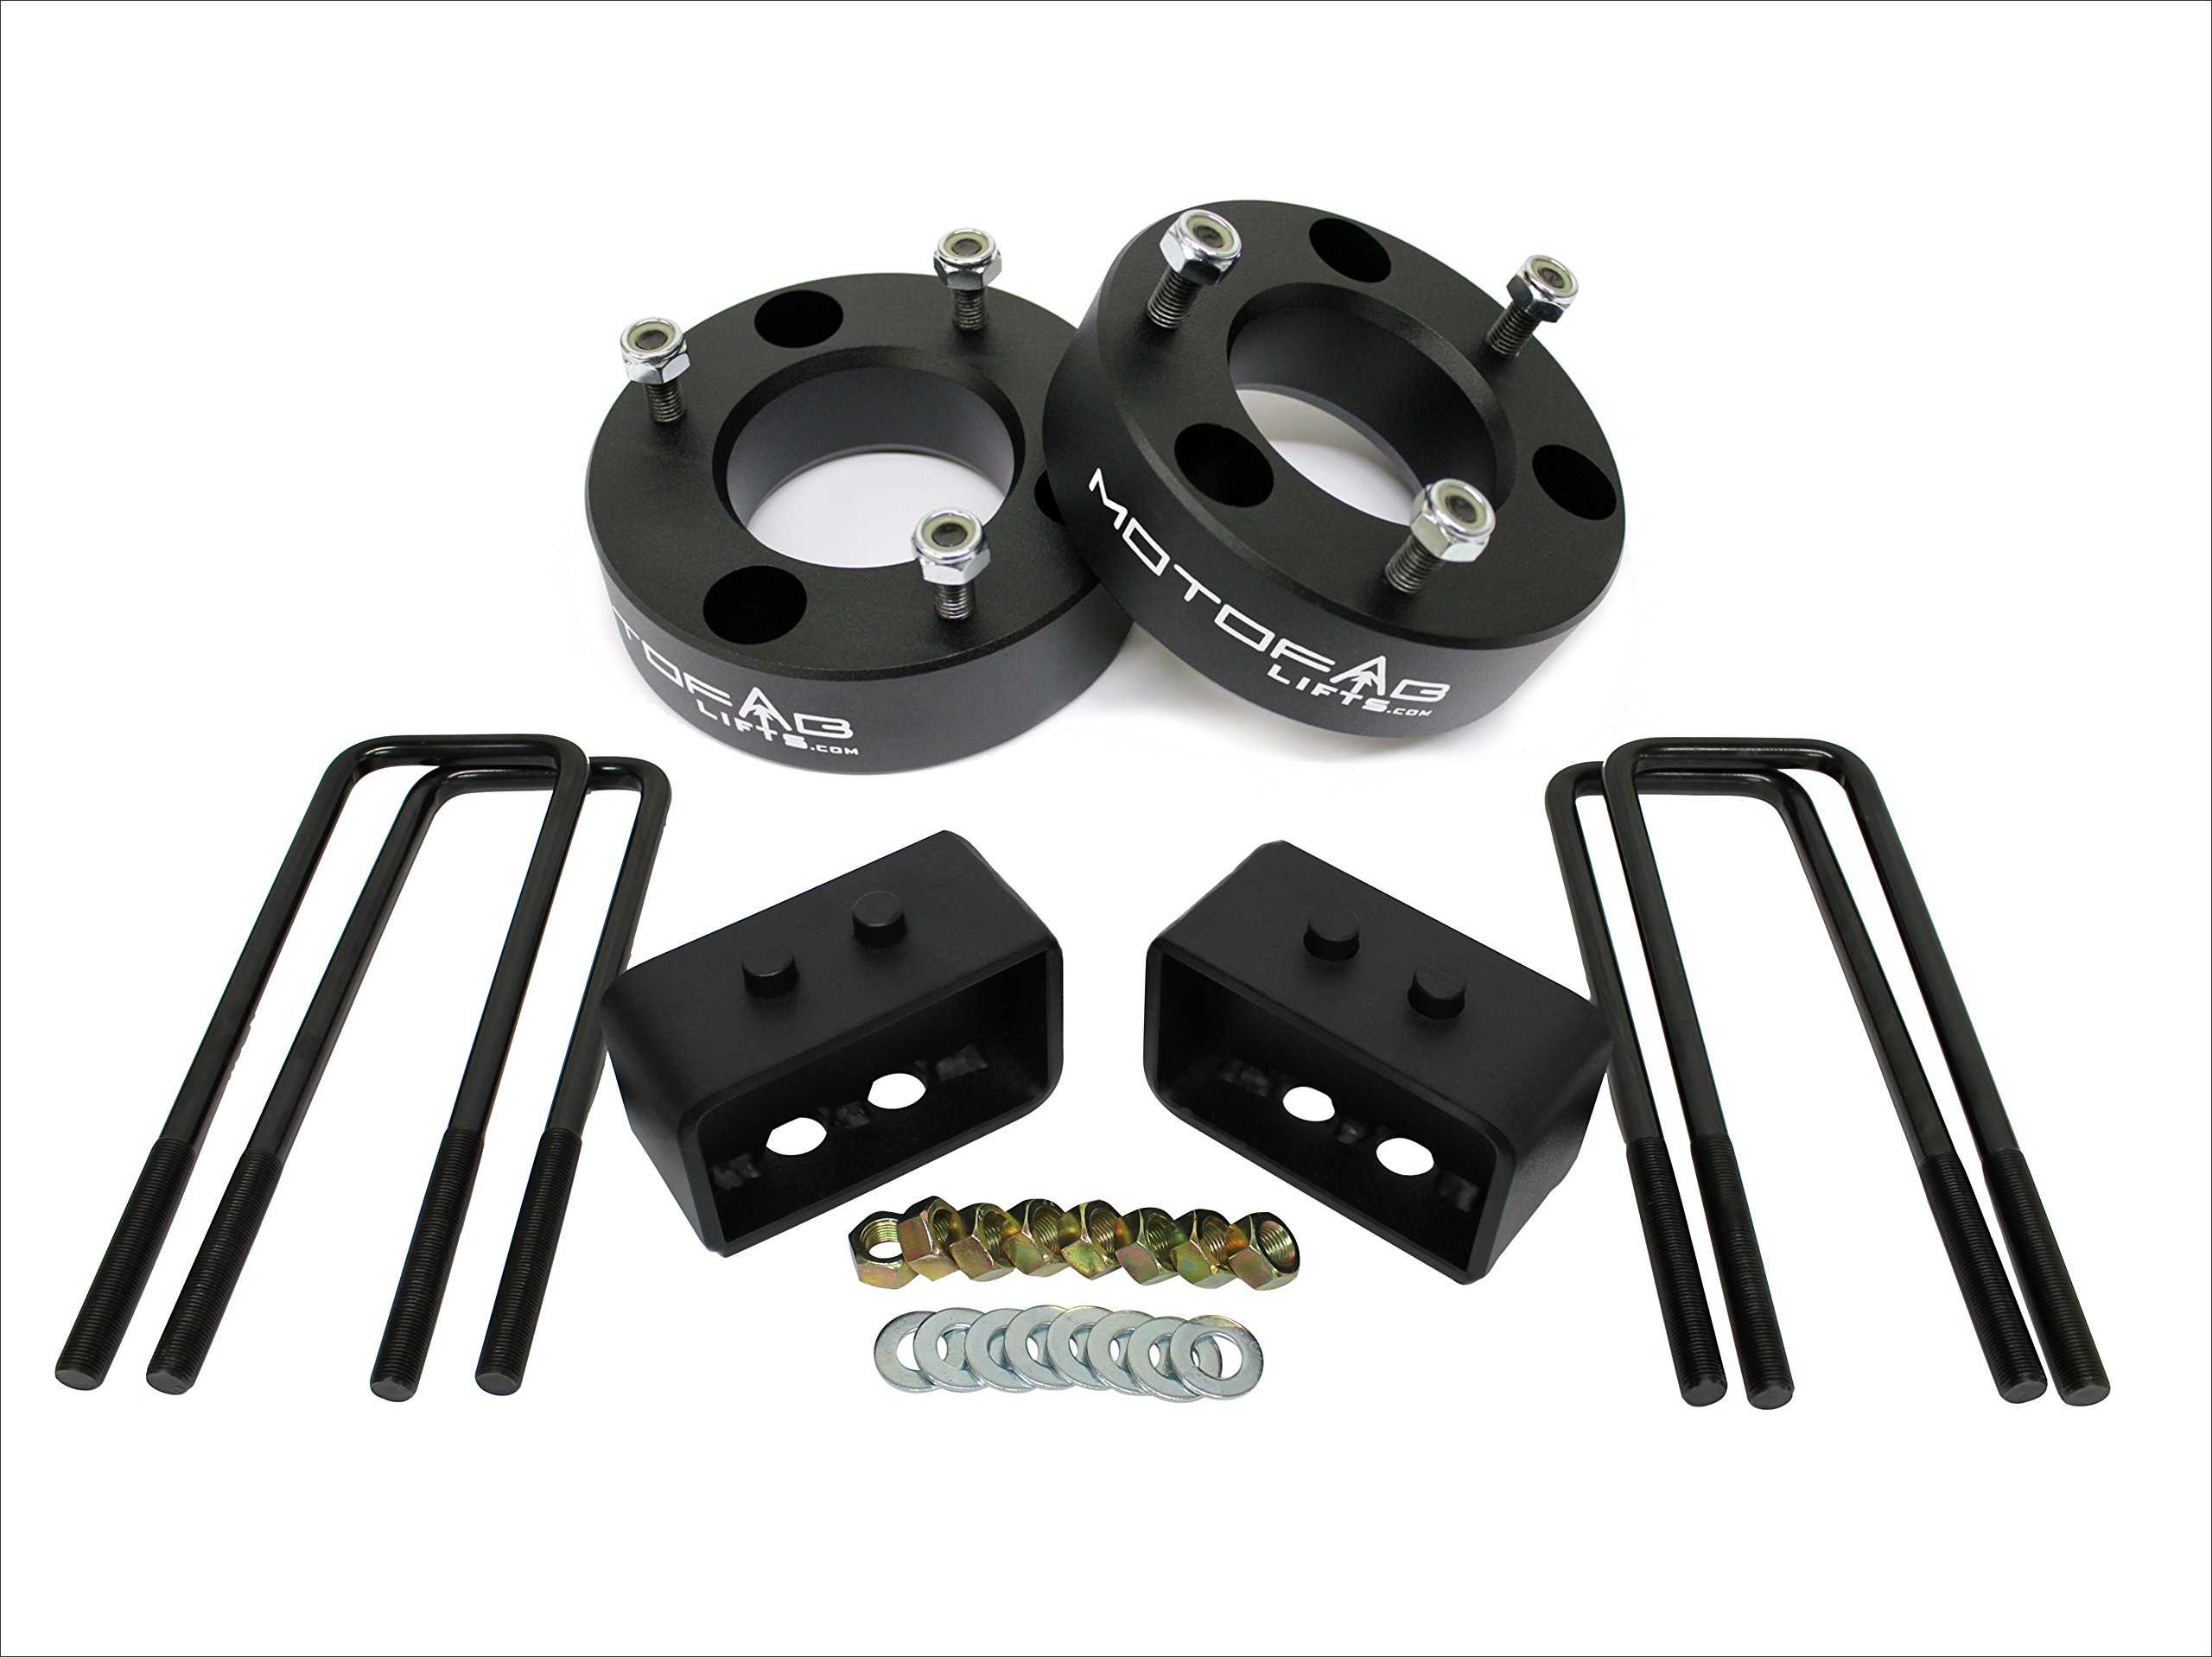 MotoFab Lifts F150-3F-2R 3'' Front and 2'' Rear Leveling lift kit for 2004-2014 Ford F150